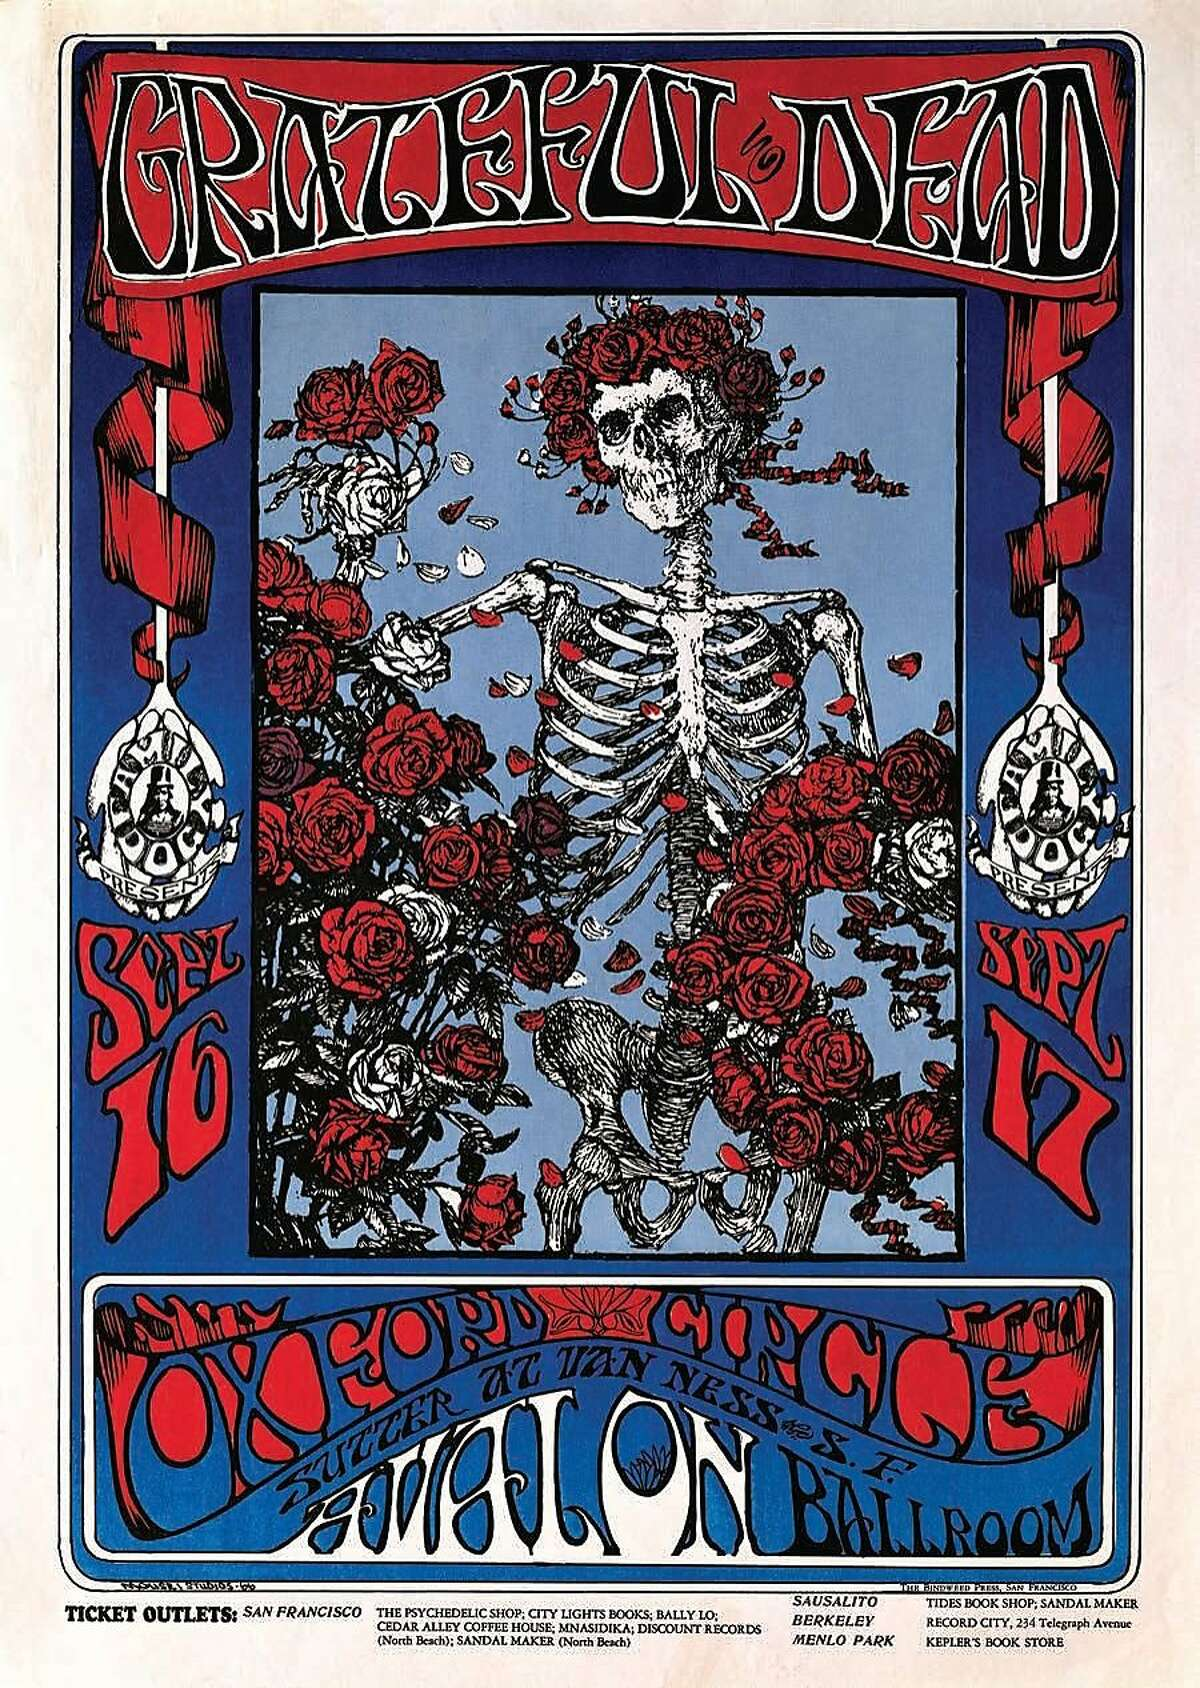 Avalon Ballroom Skeleton and Roses, 1966. This drawing by Stanley Mouse became one of the most iconic nimages in rock music history.